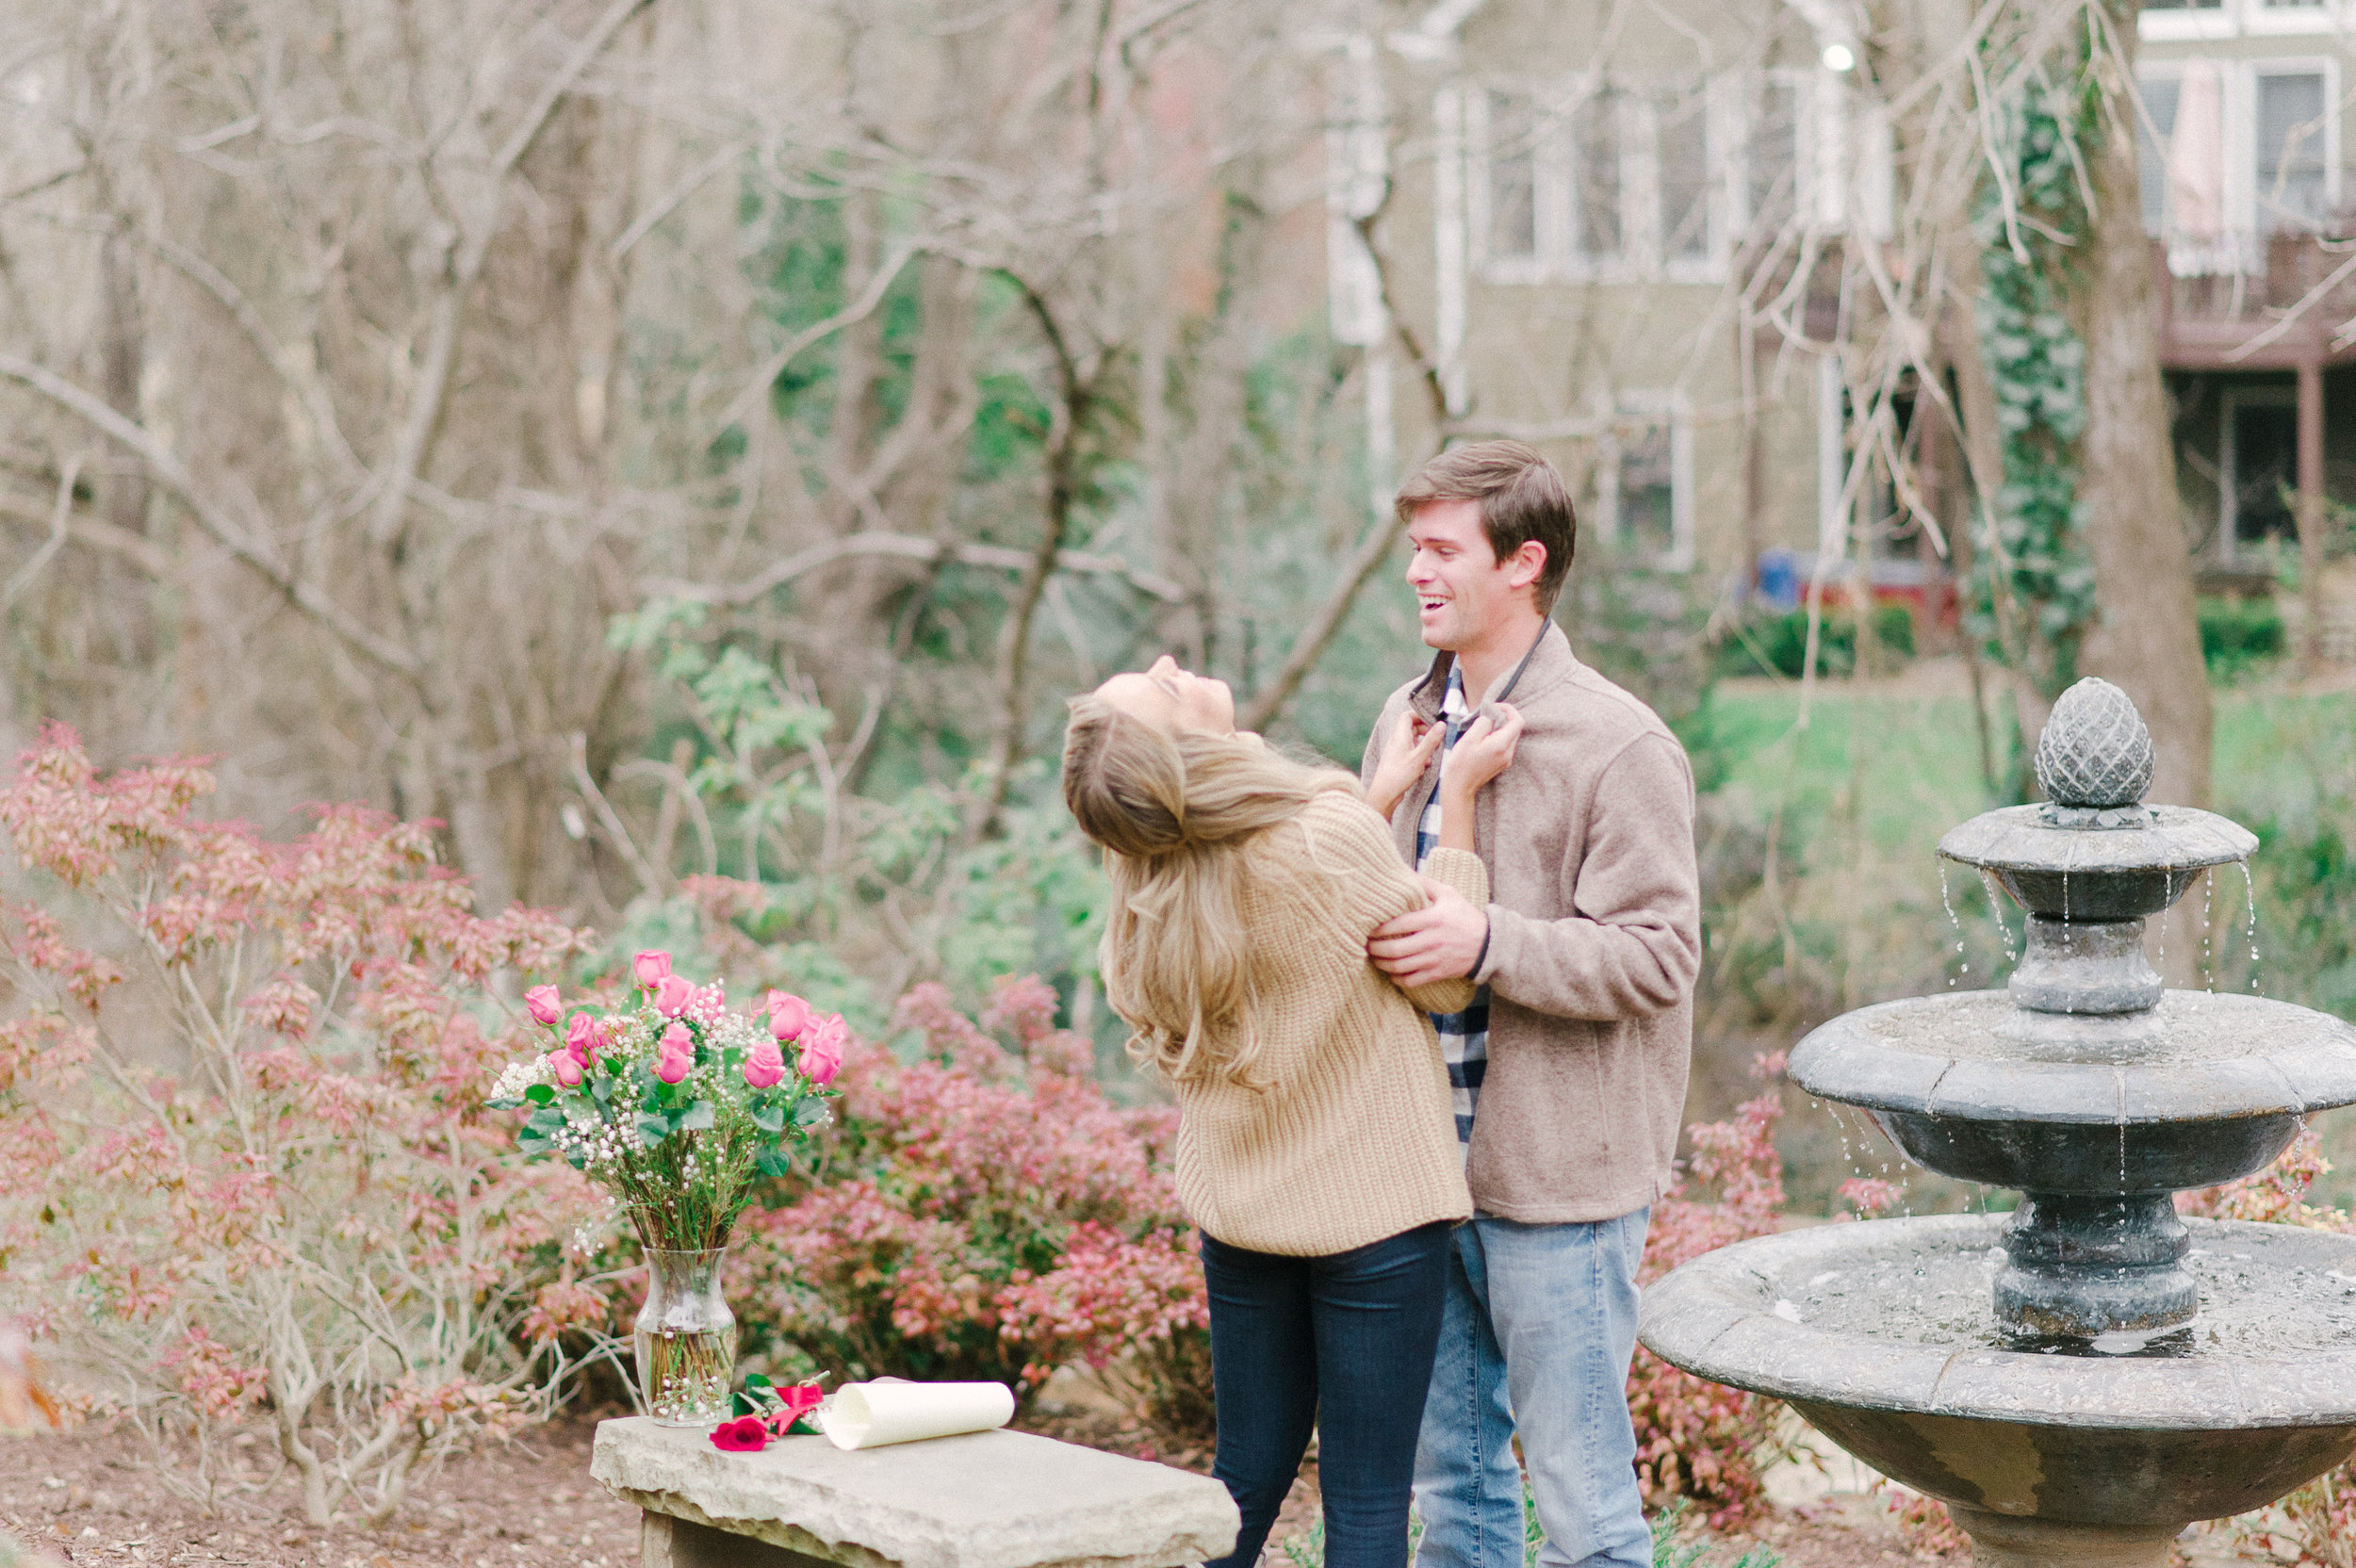 Hannah-forsberg-engagement-proposal-photographer-atlanta-14.jpg